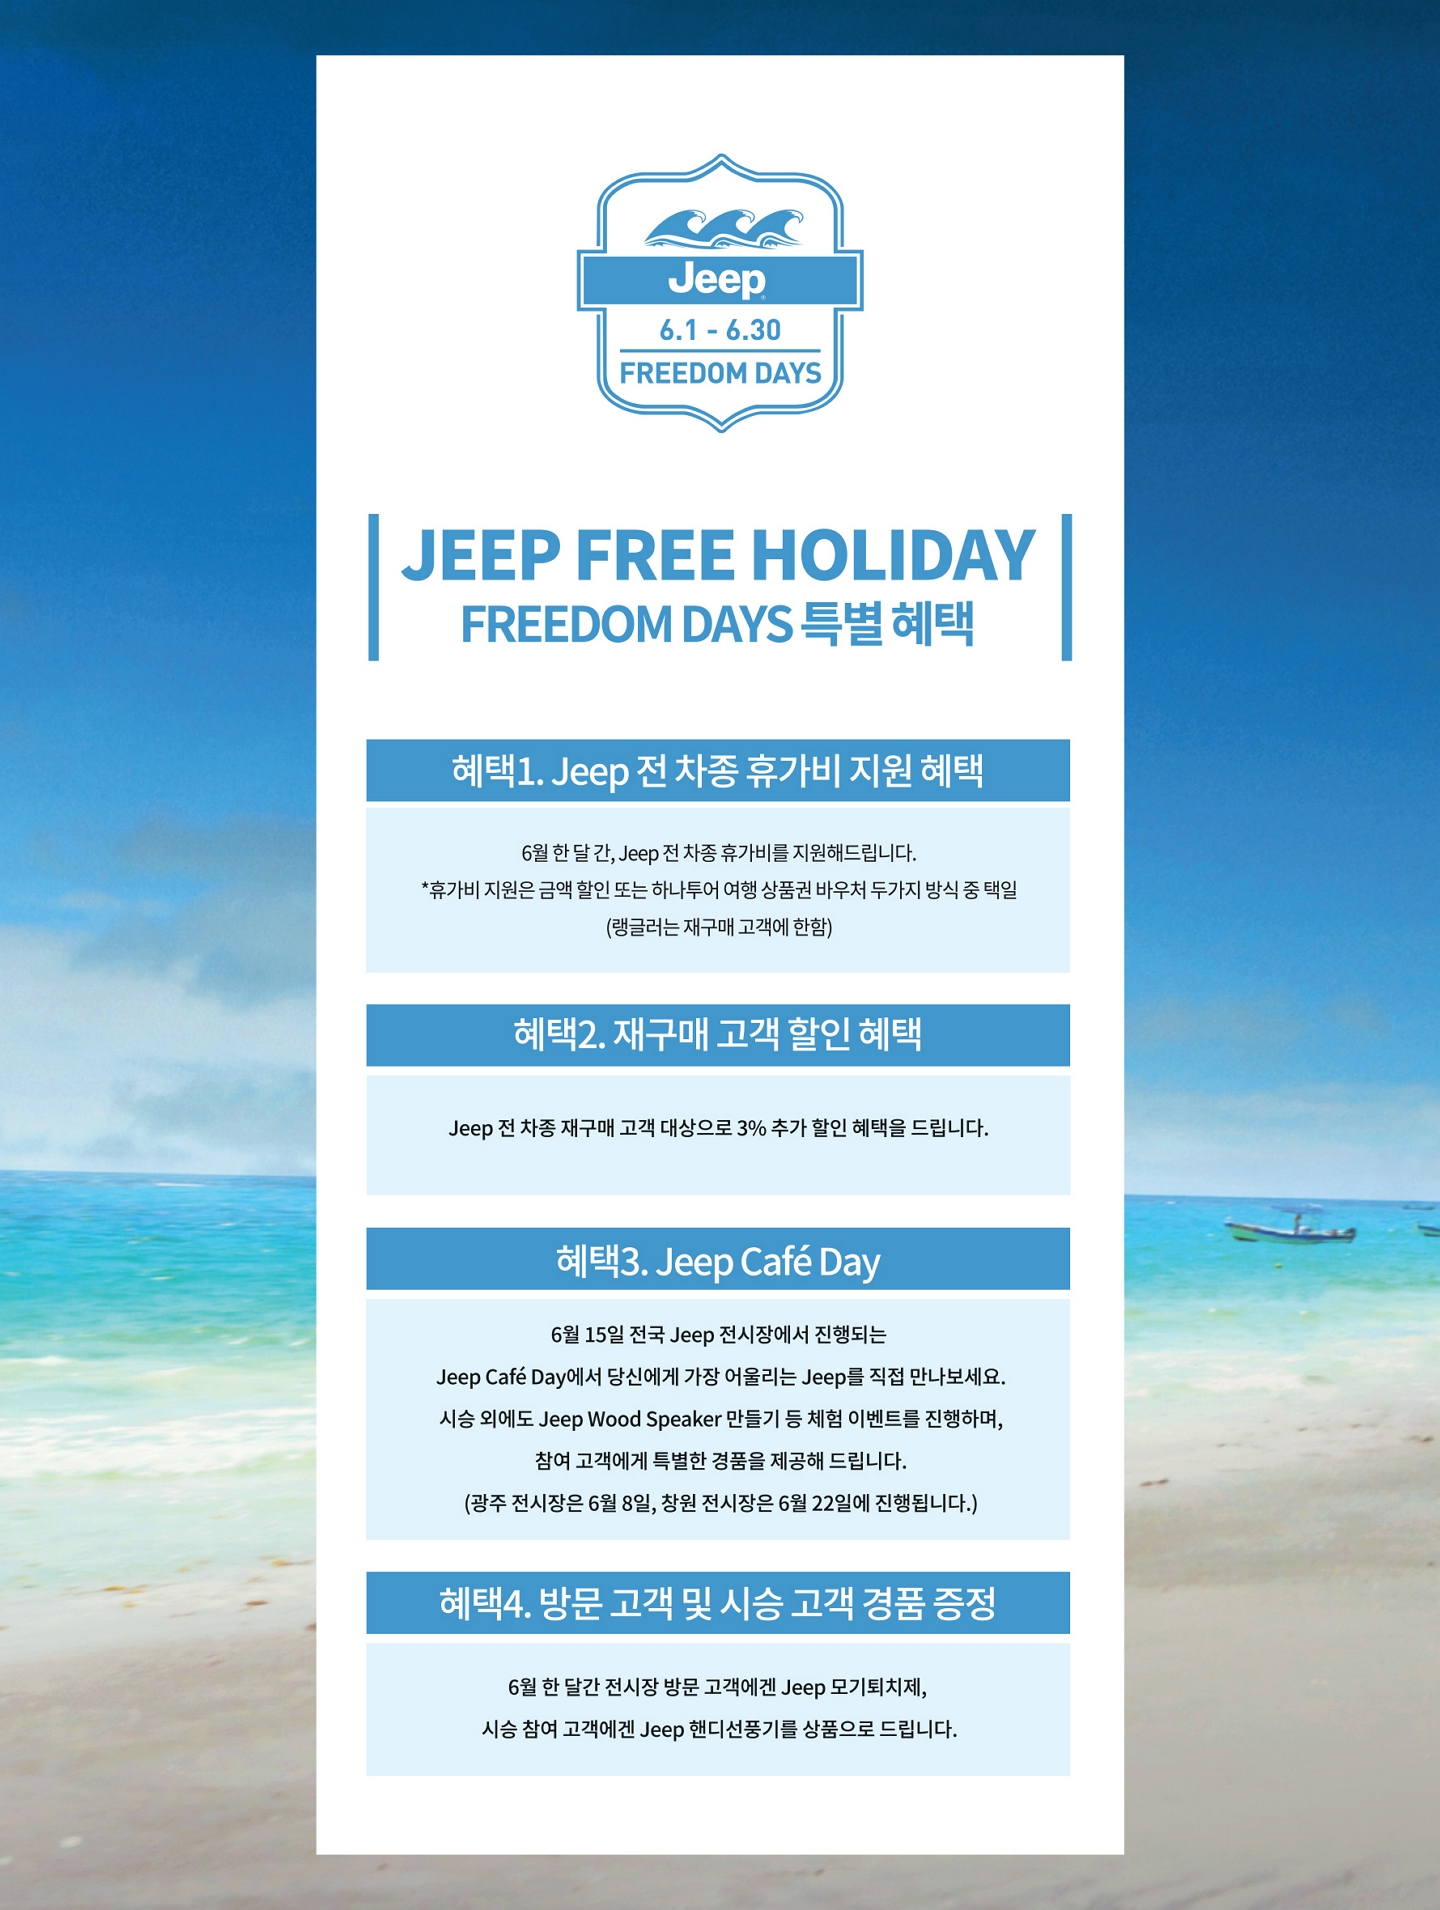 JEEP FREE HOLIDAY